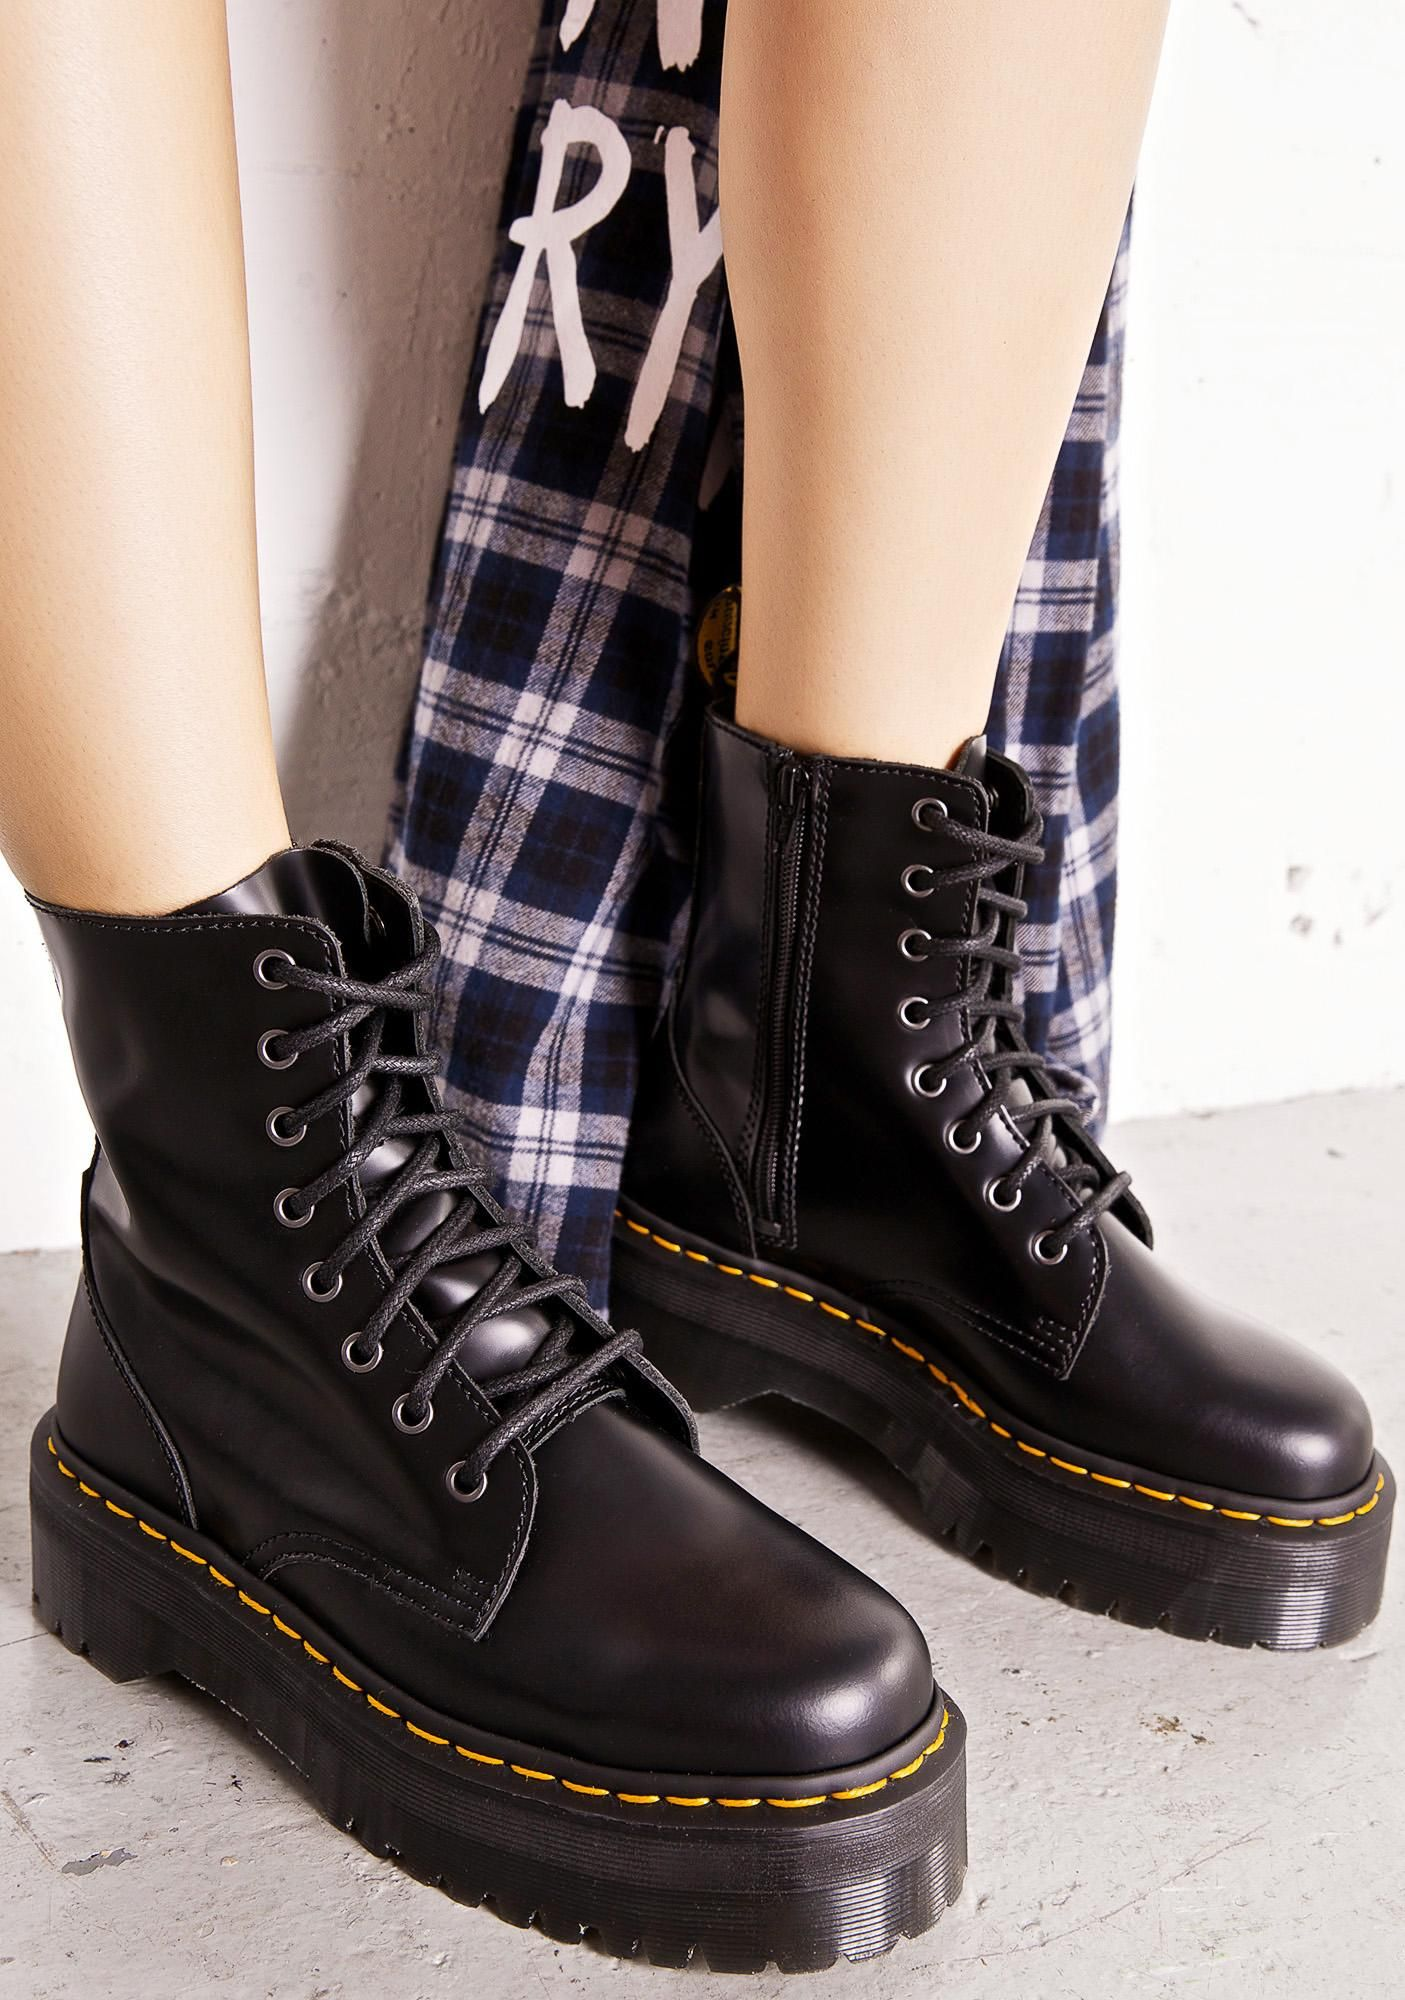 f6ca156412 Dr. Martens Jadon 8 Eye Boots cuz yer gunna need sum extra height to pull